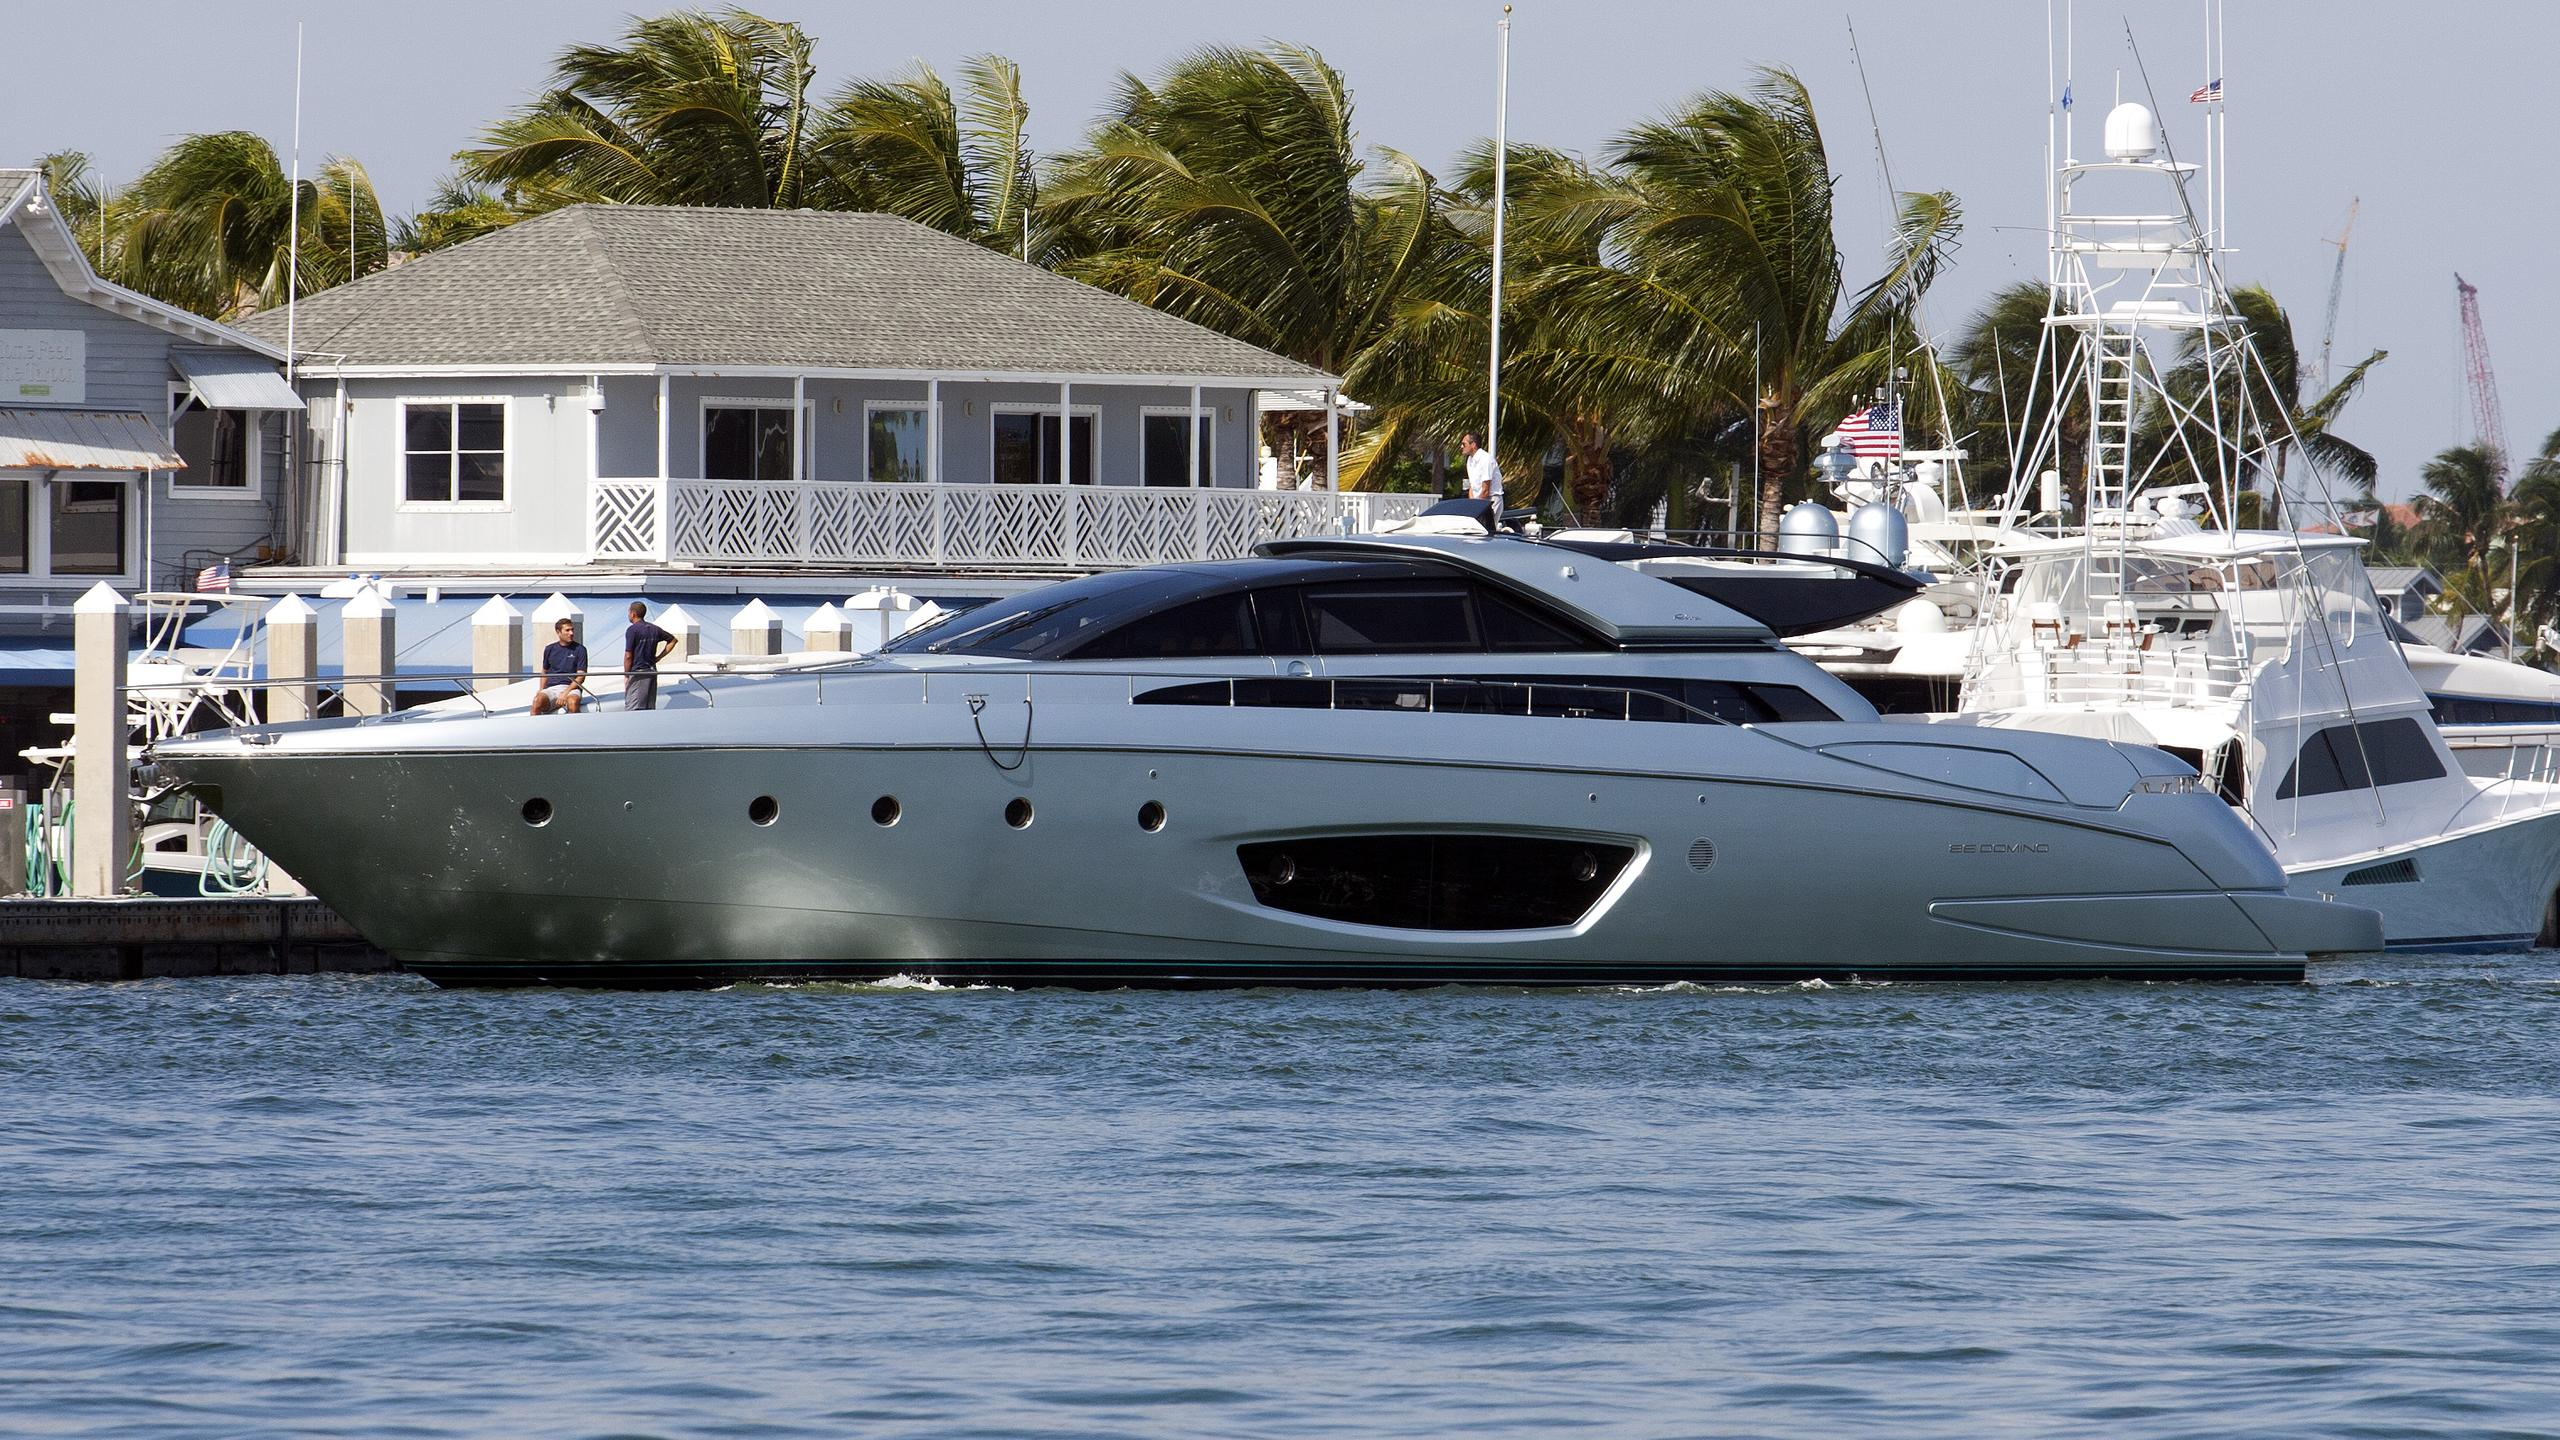 excellence iv riva 86 domino motoryacht 26m 2013 profile